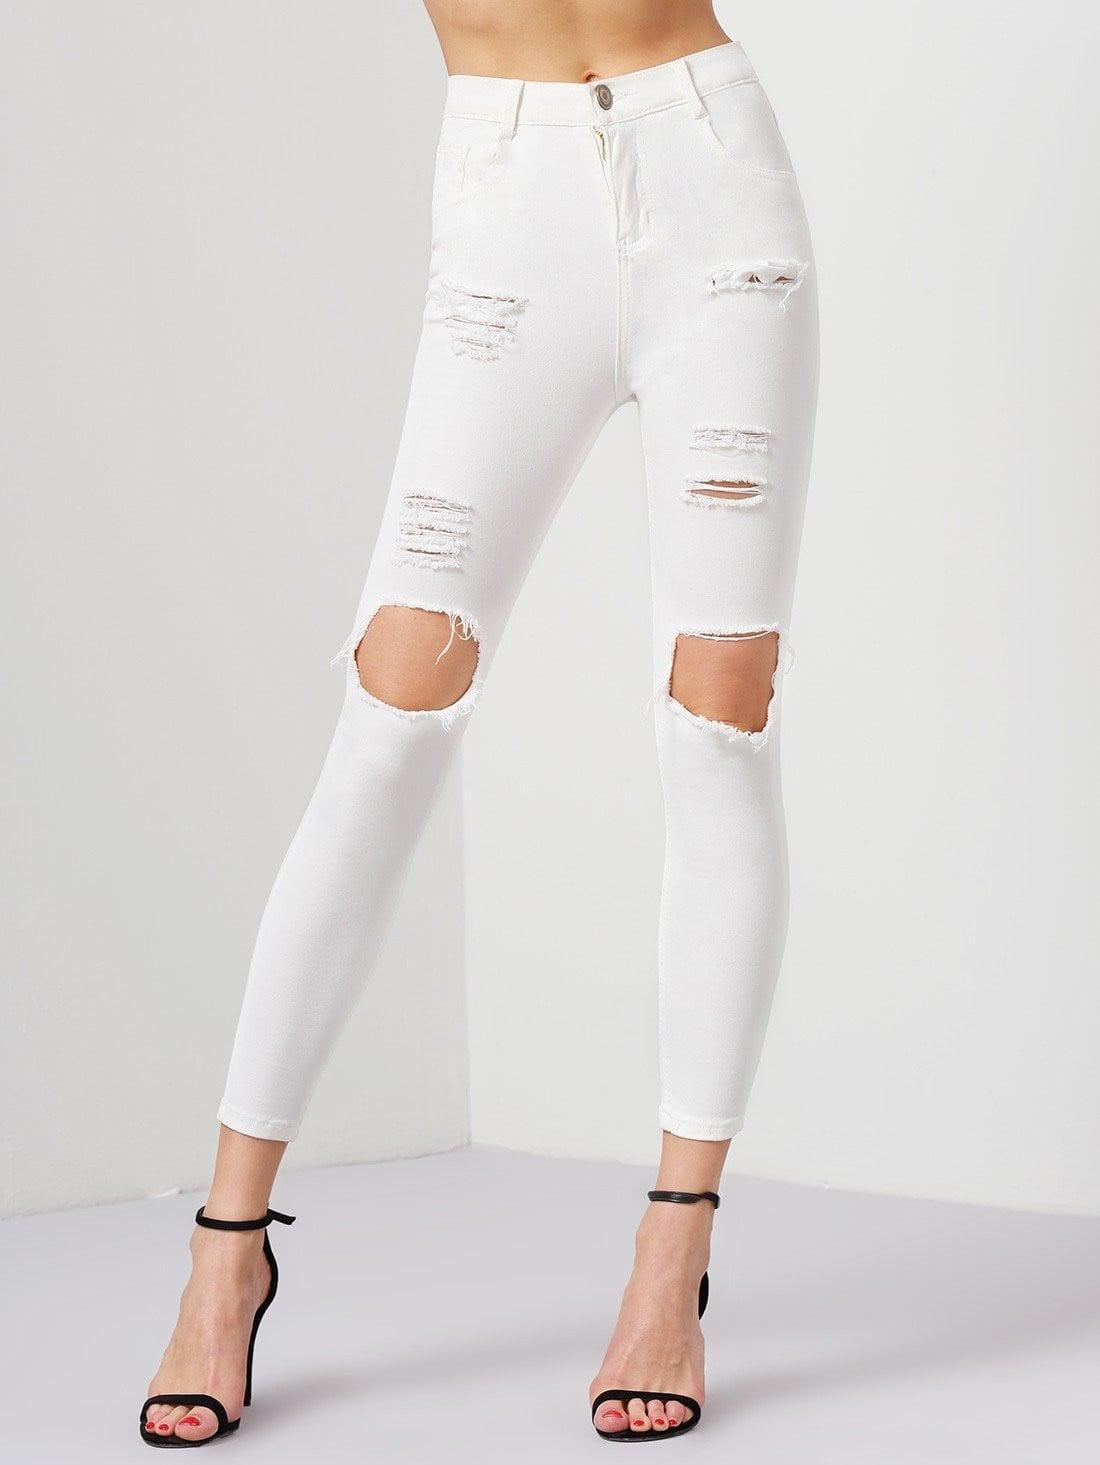 White Ripped Slim Denim Pant - Pants - Zooomberg - Zoomberg